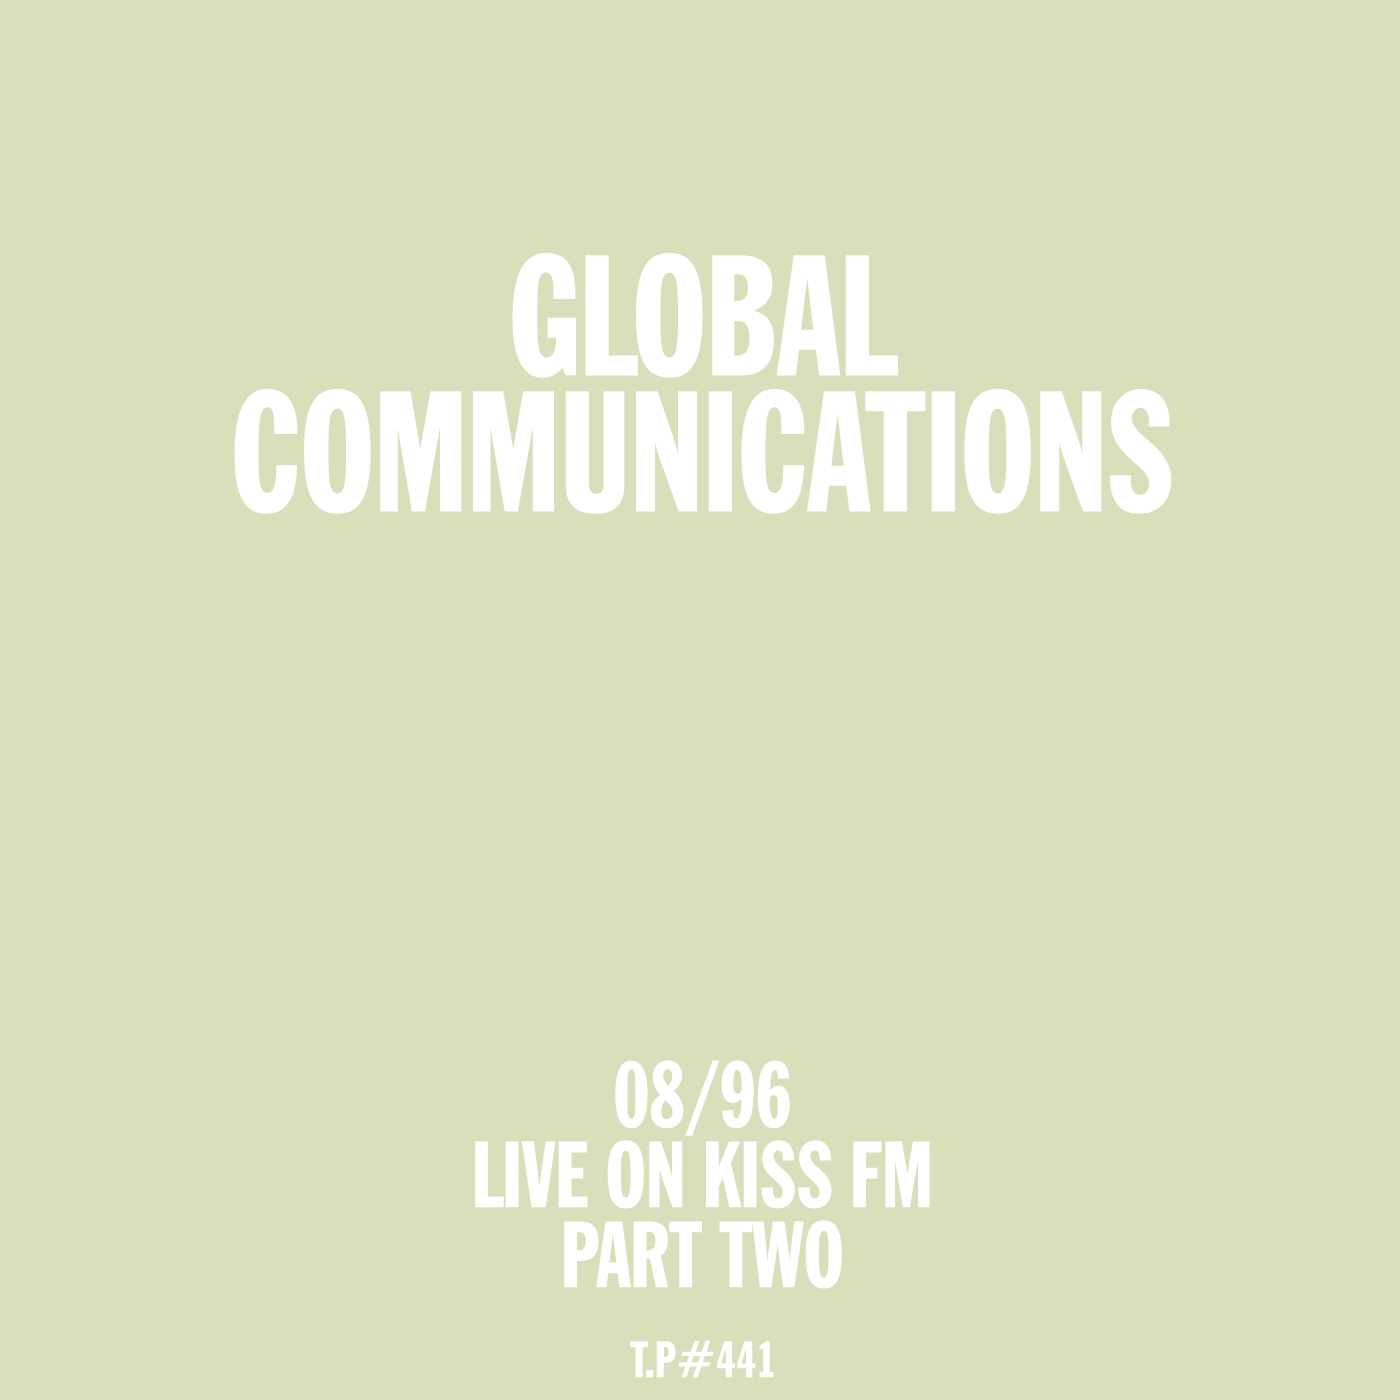 Global Communications, Givin' It Up, Kiss FM, 1996, August, Radio Show, Gold